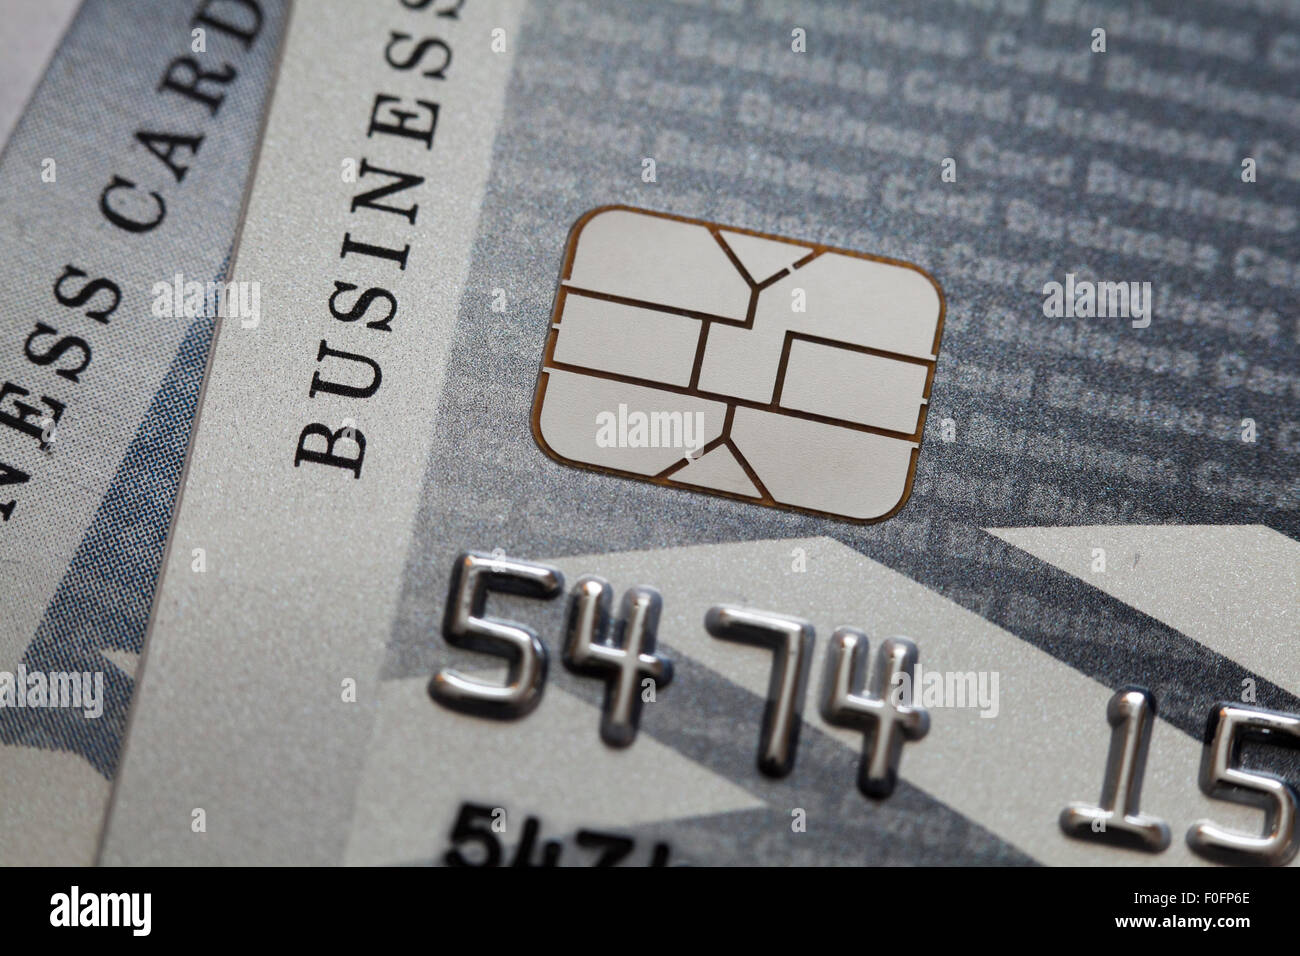 Bank of america business credit card security chip usa stock photo bank of america business credit card security chip usa colourmoves